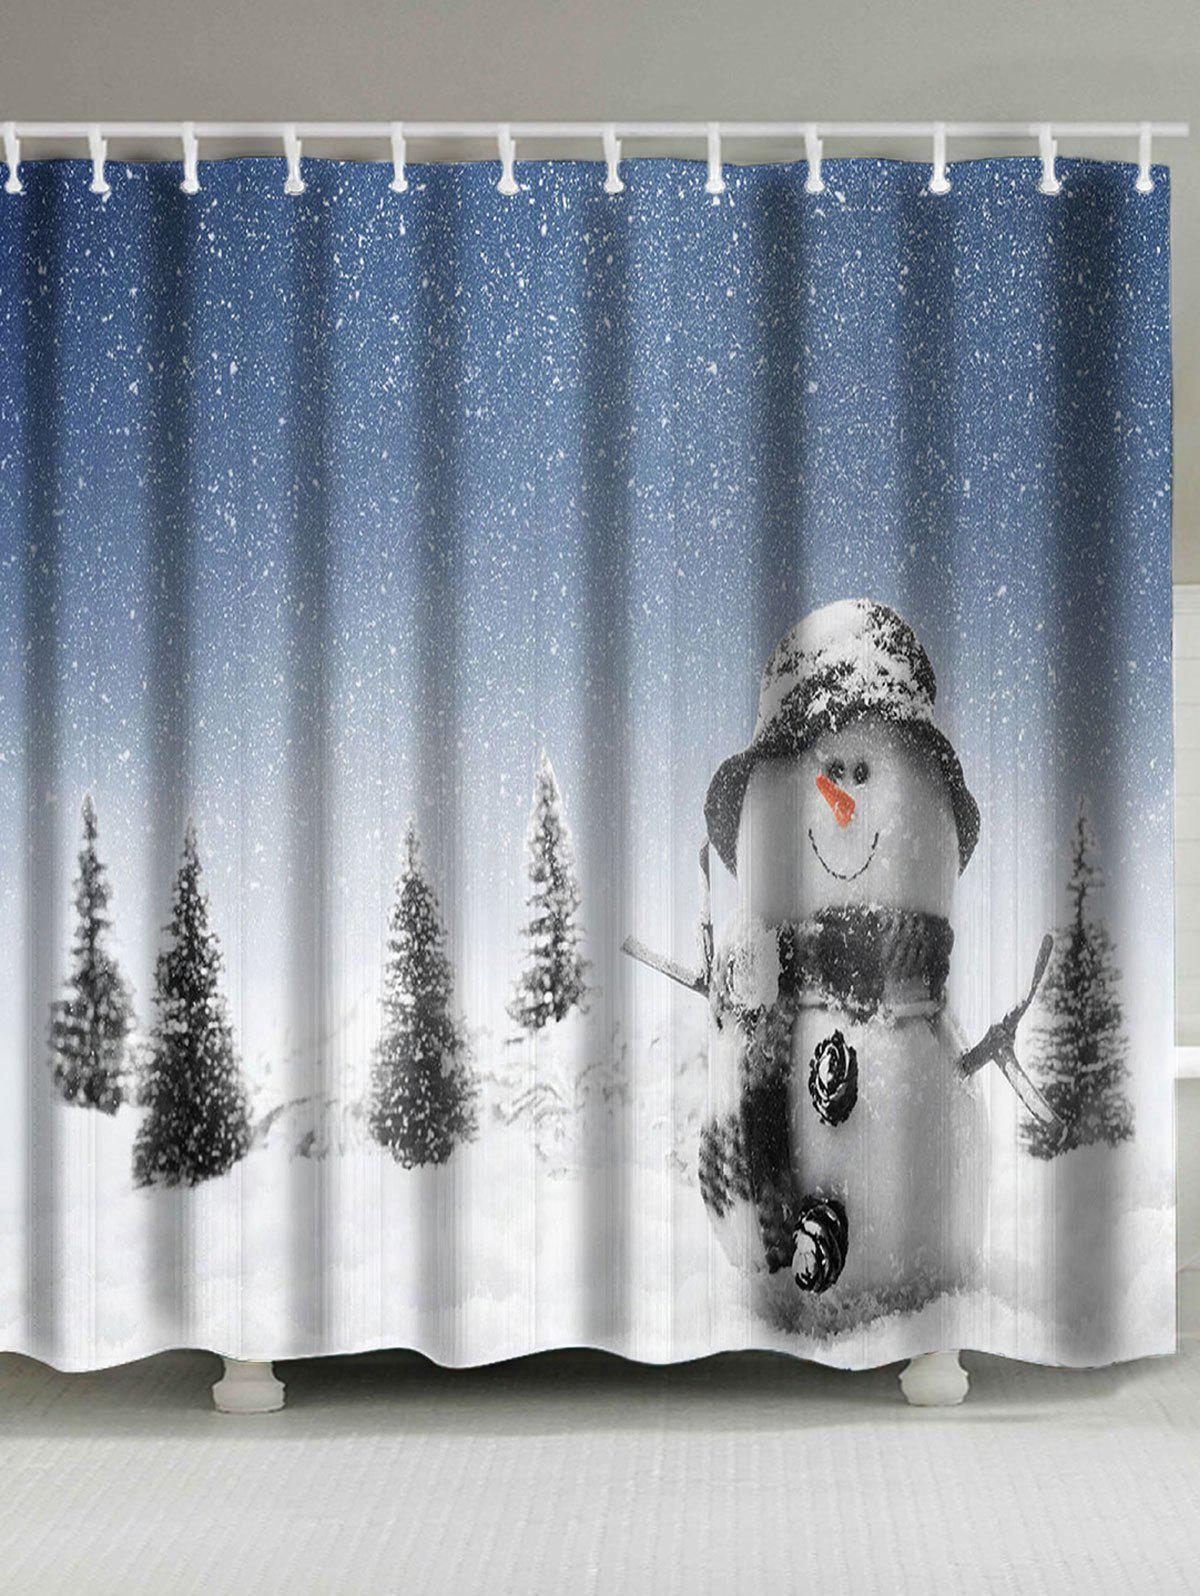 2018 Christmas Snowman Patterned Shower Bath Curtain White W Inch L Inch In Shower Curtains